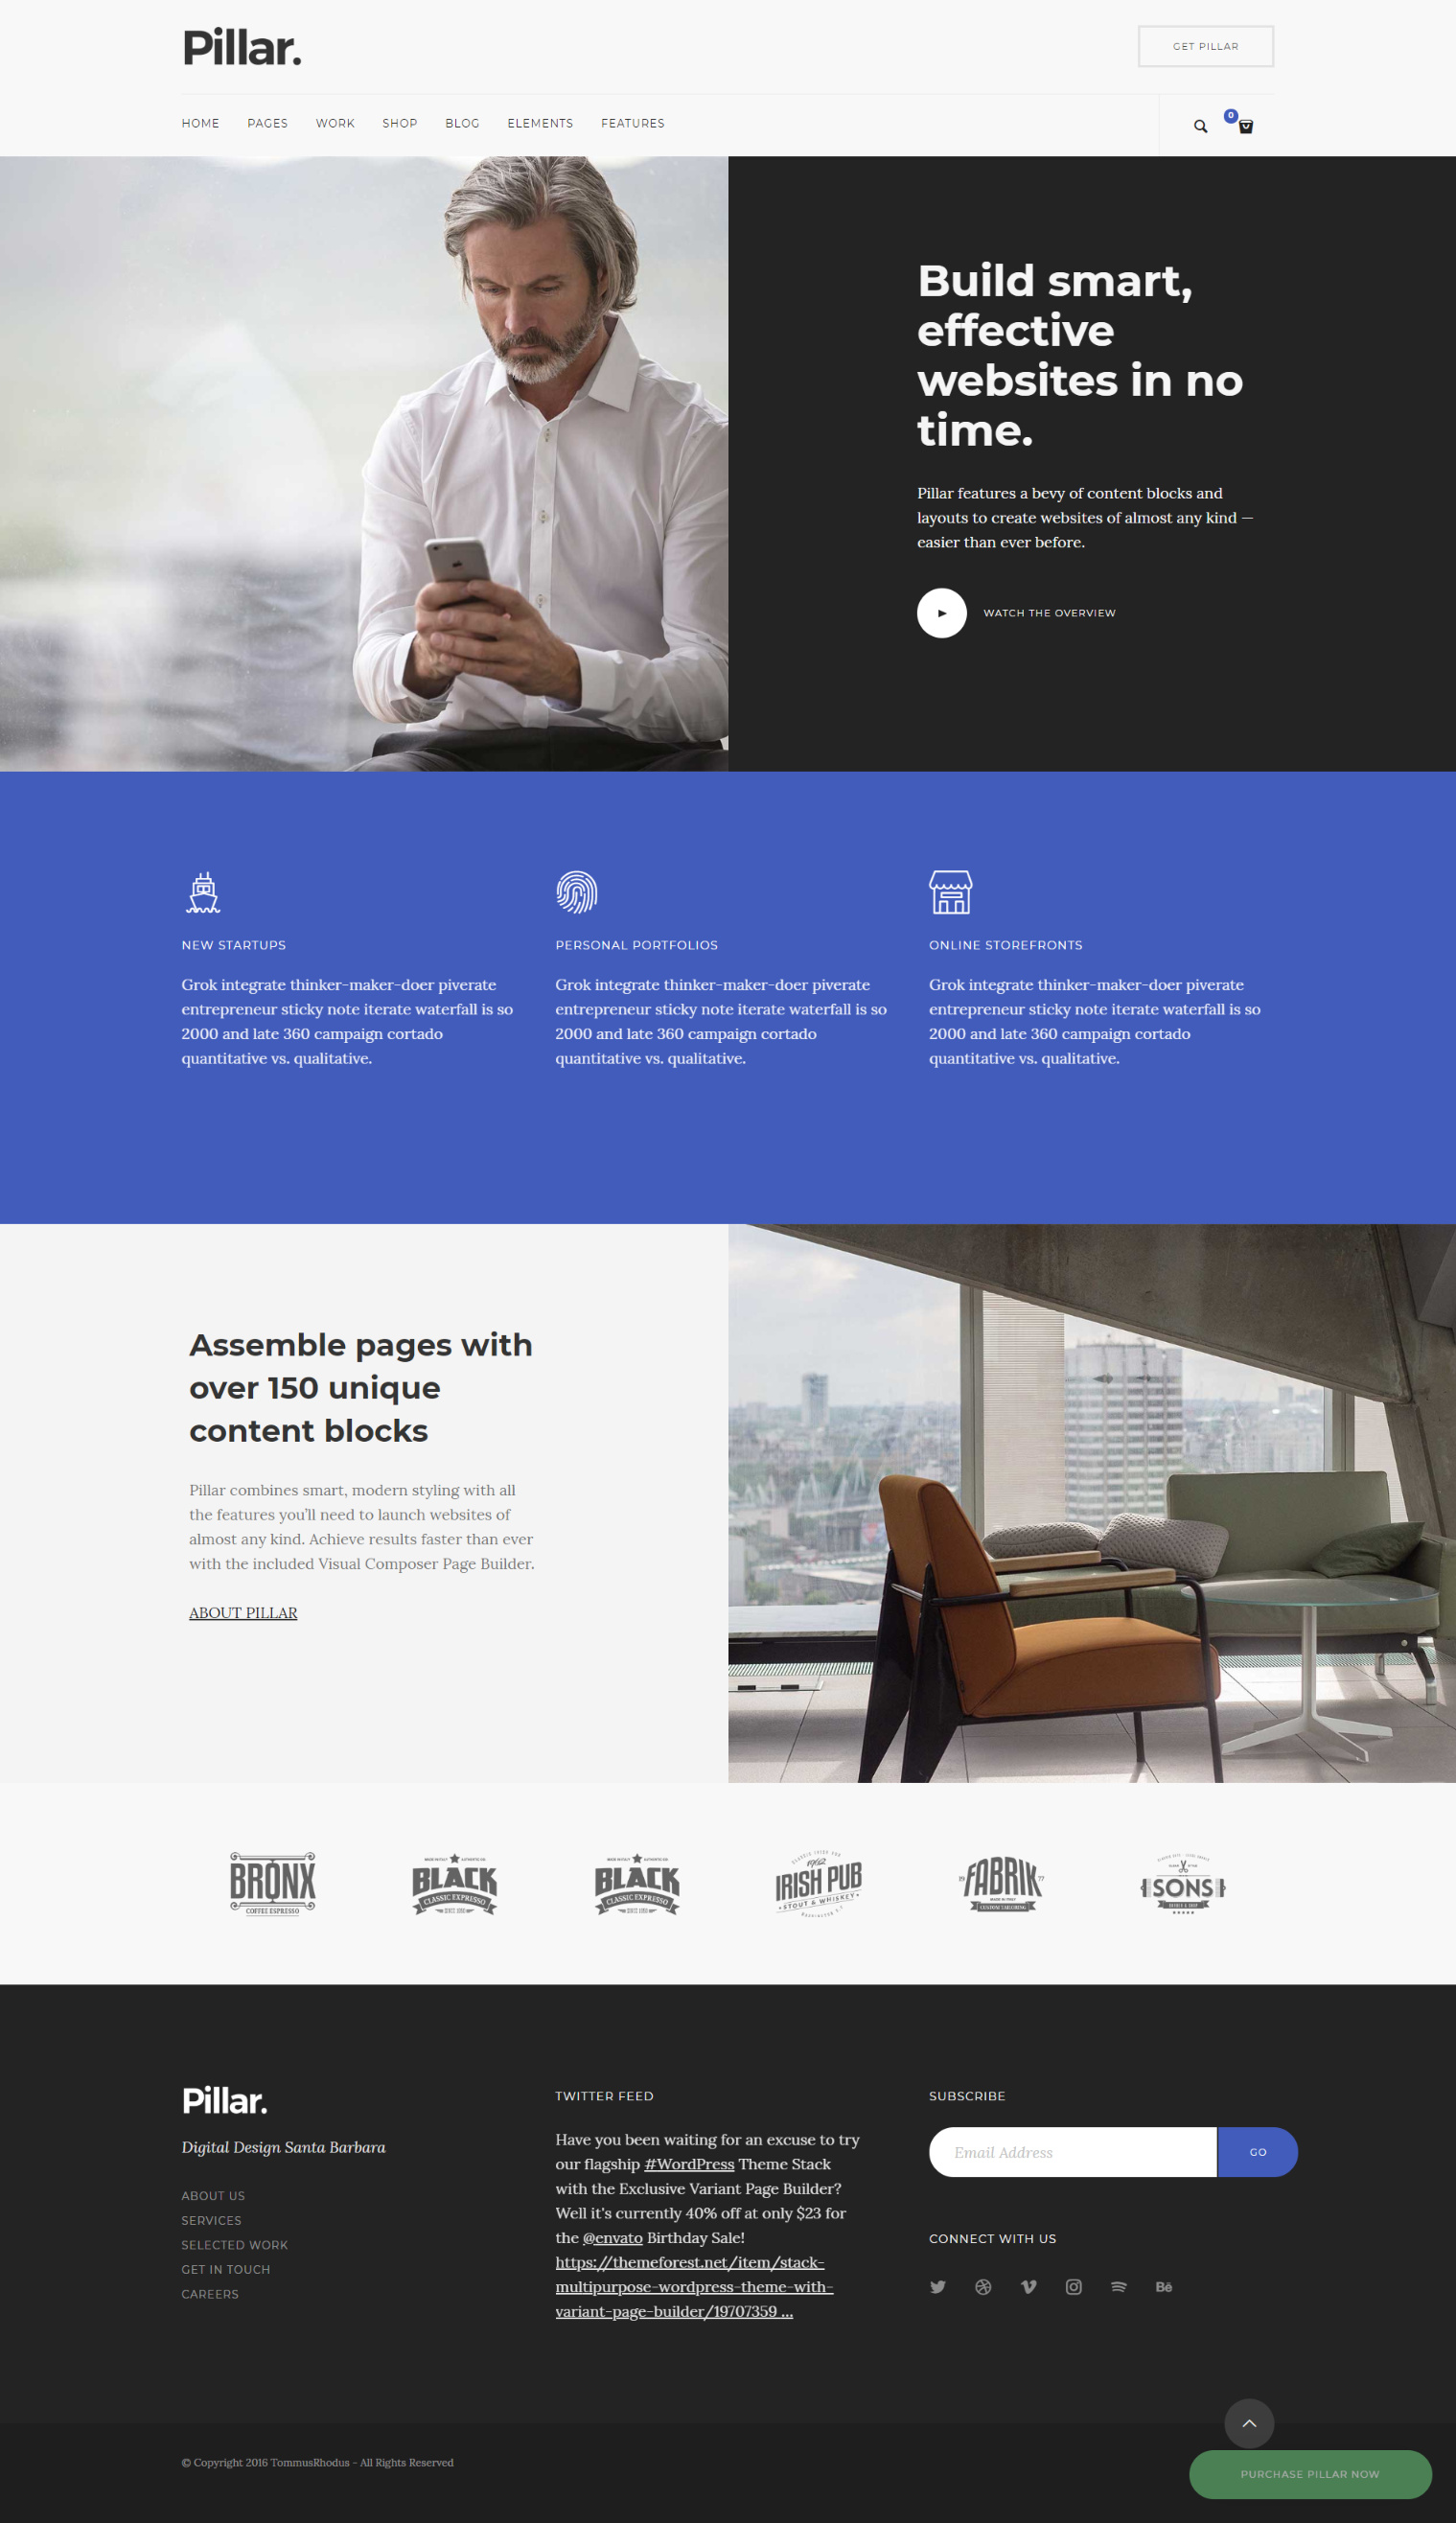 Top 10 Modern Stylish Trendy Wordpress Themes For A New Startup Company Corporate Website Design Website Design Services Web Design Tips